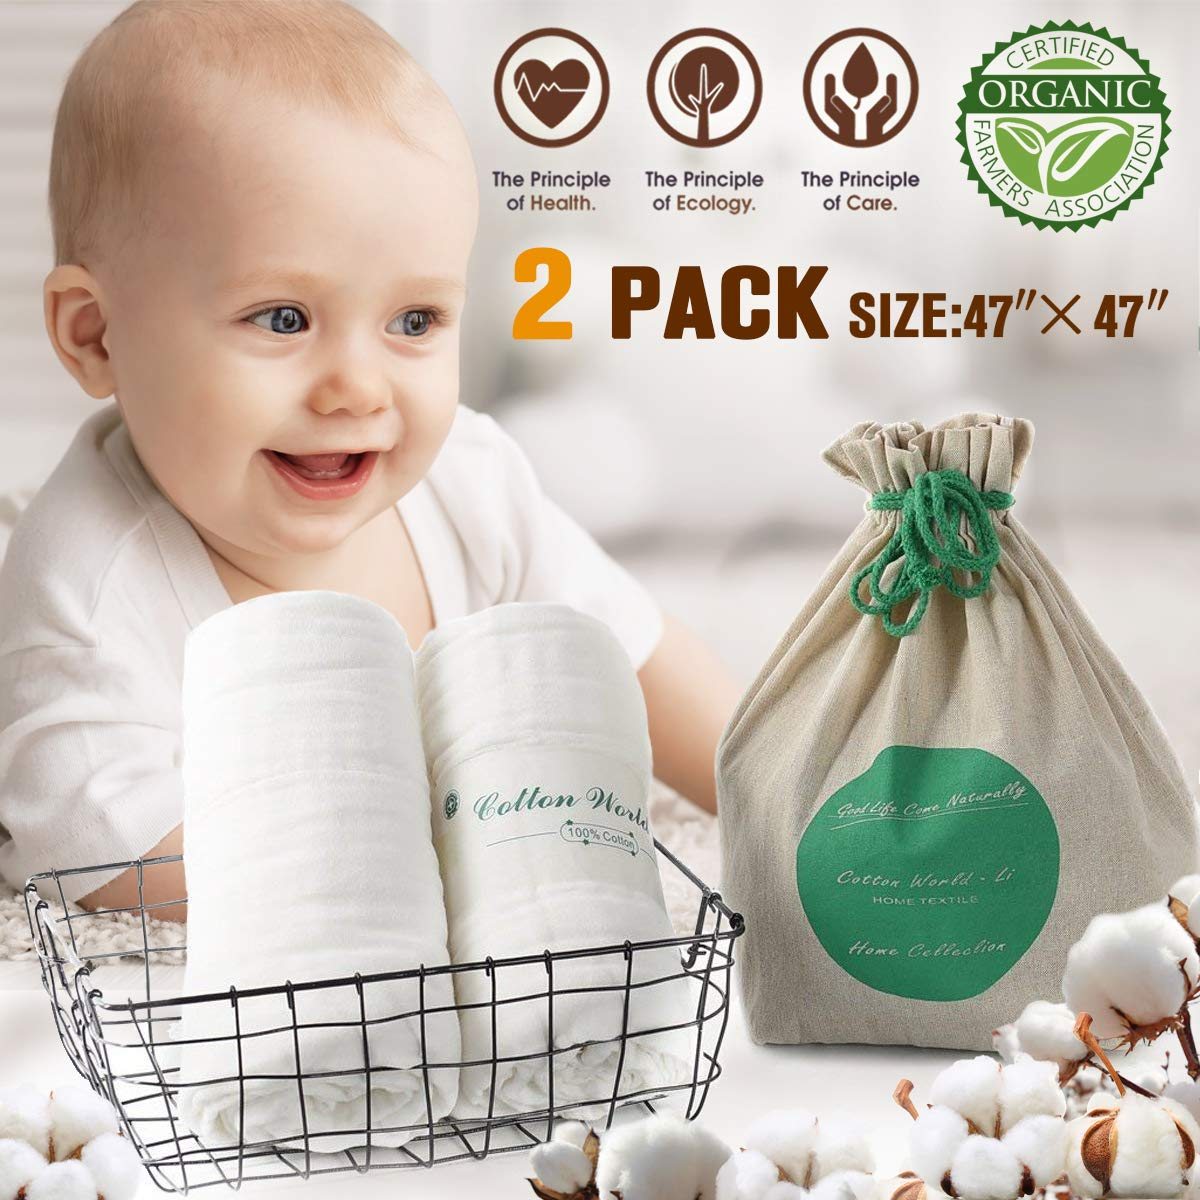 """Baby Muslin Bath Towels(2 Pack) 47""""x47"""", Cotton World Li 100% Natural Organic Cotton 6 Layered Soft Toddler Infant Bath Towels for Sensitive Skin, Premium Extra Soft & Super Water Absorbent (2)"""